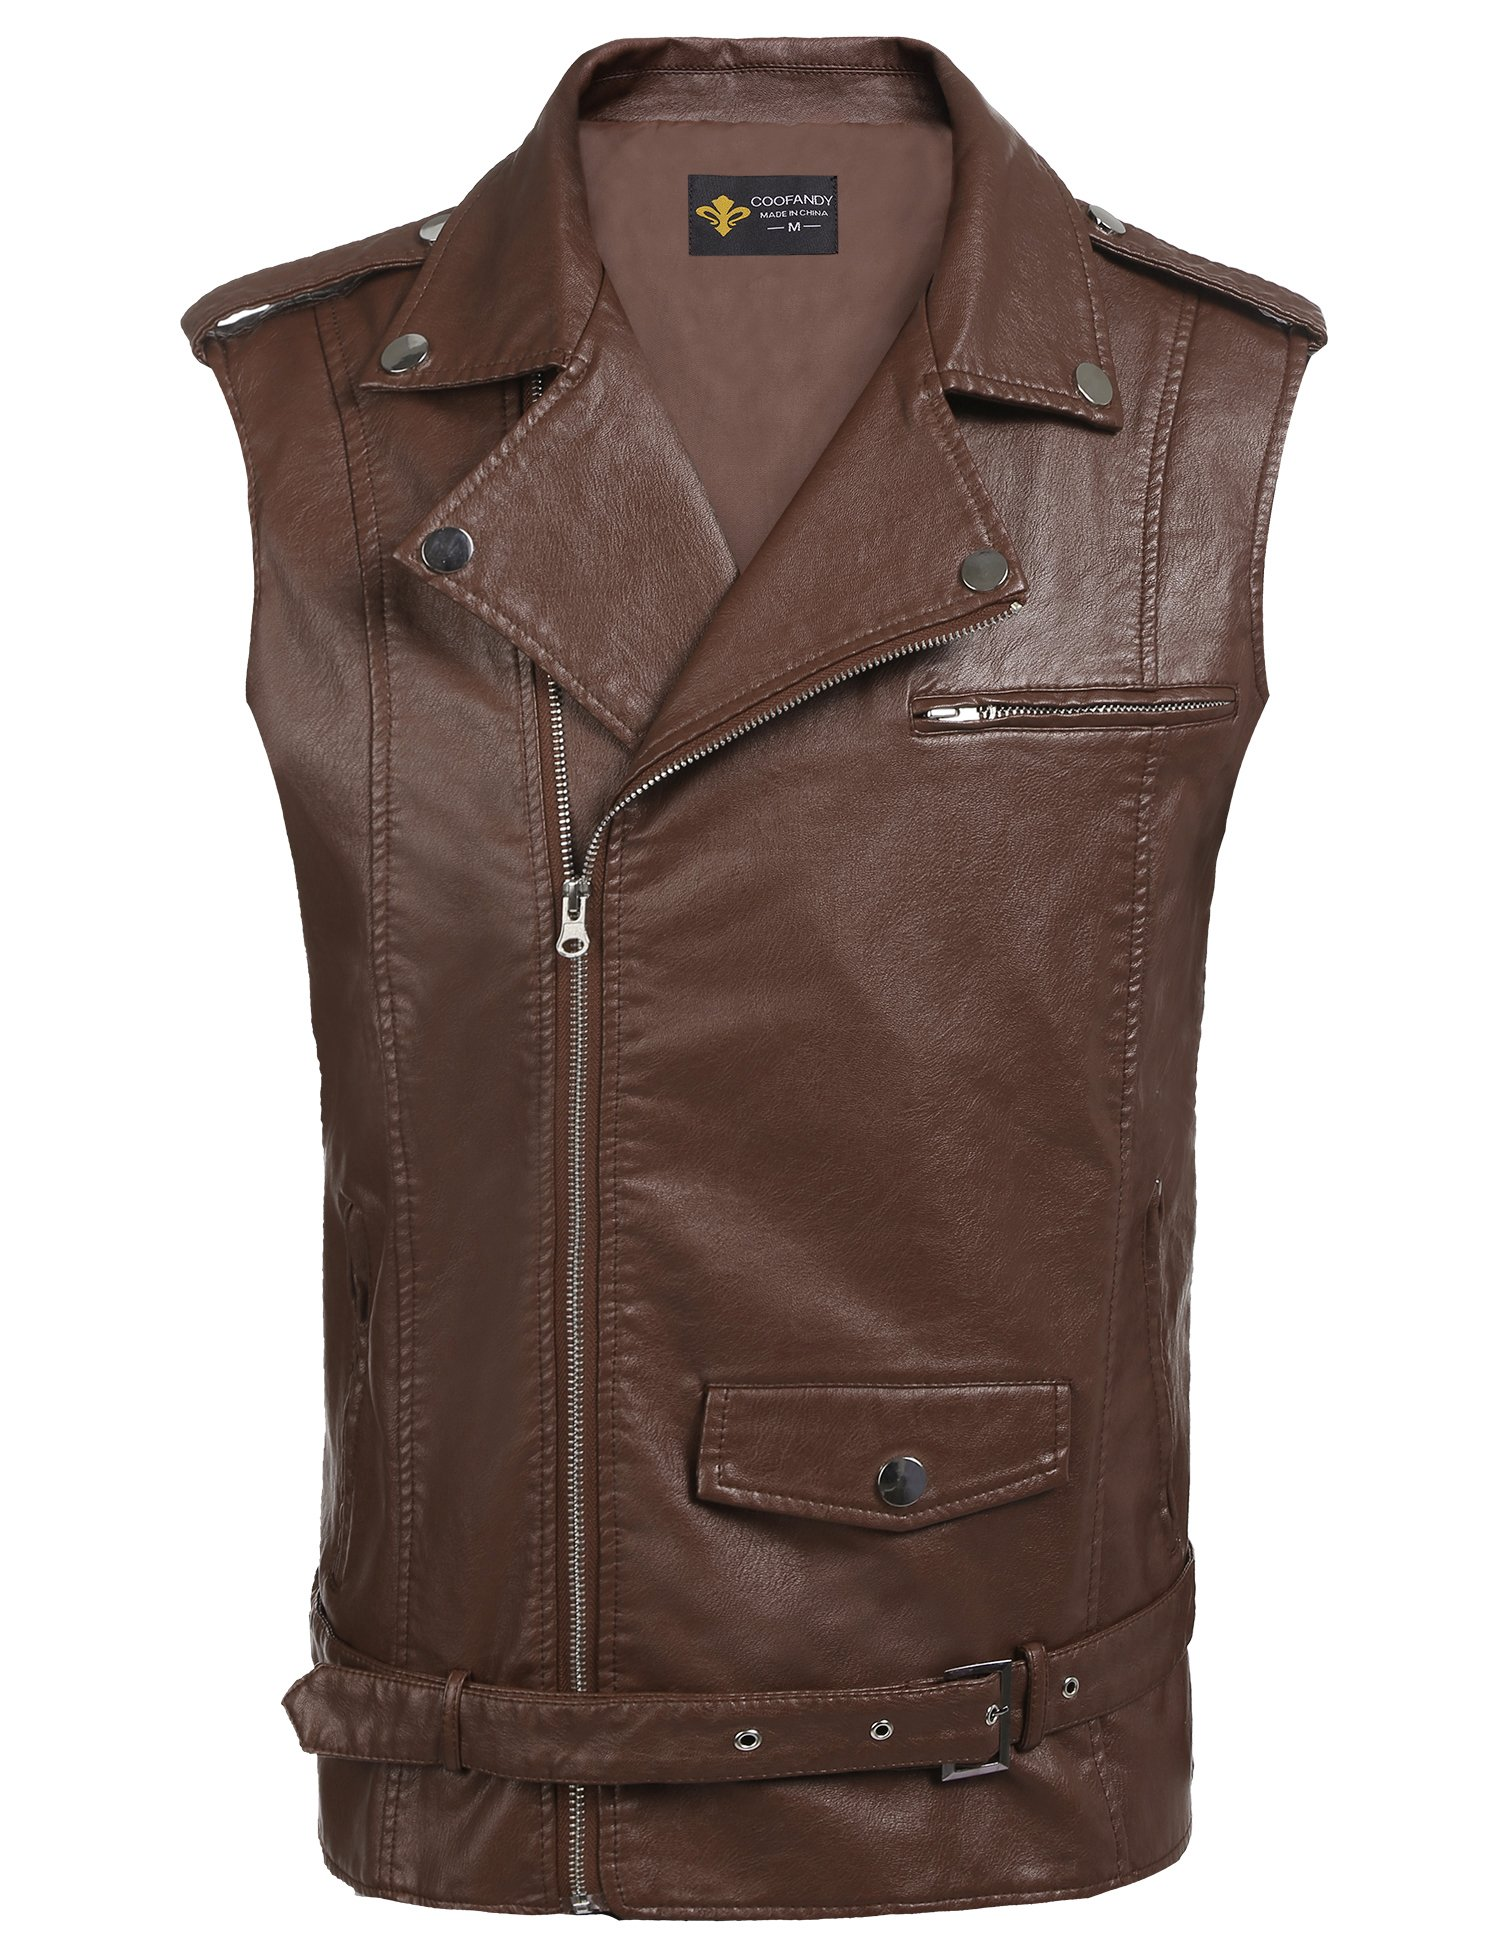 JINIDU Mens Hipster Leather Vest Retro Motorcycle Racer Leather Jacket Vests with Gun Pocket(Brown,M)